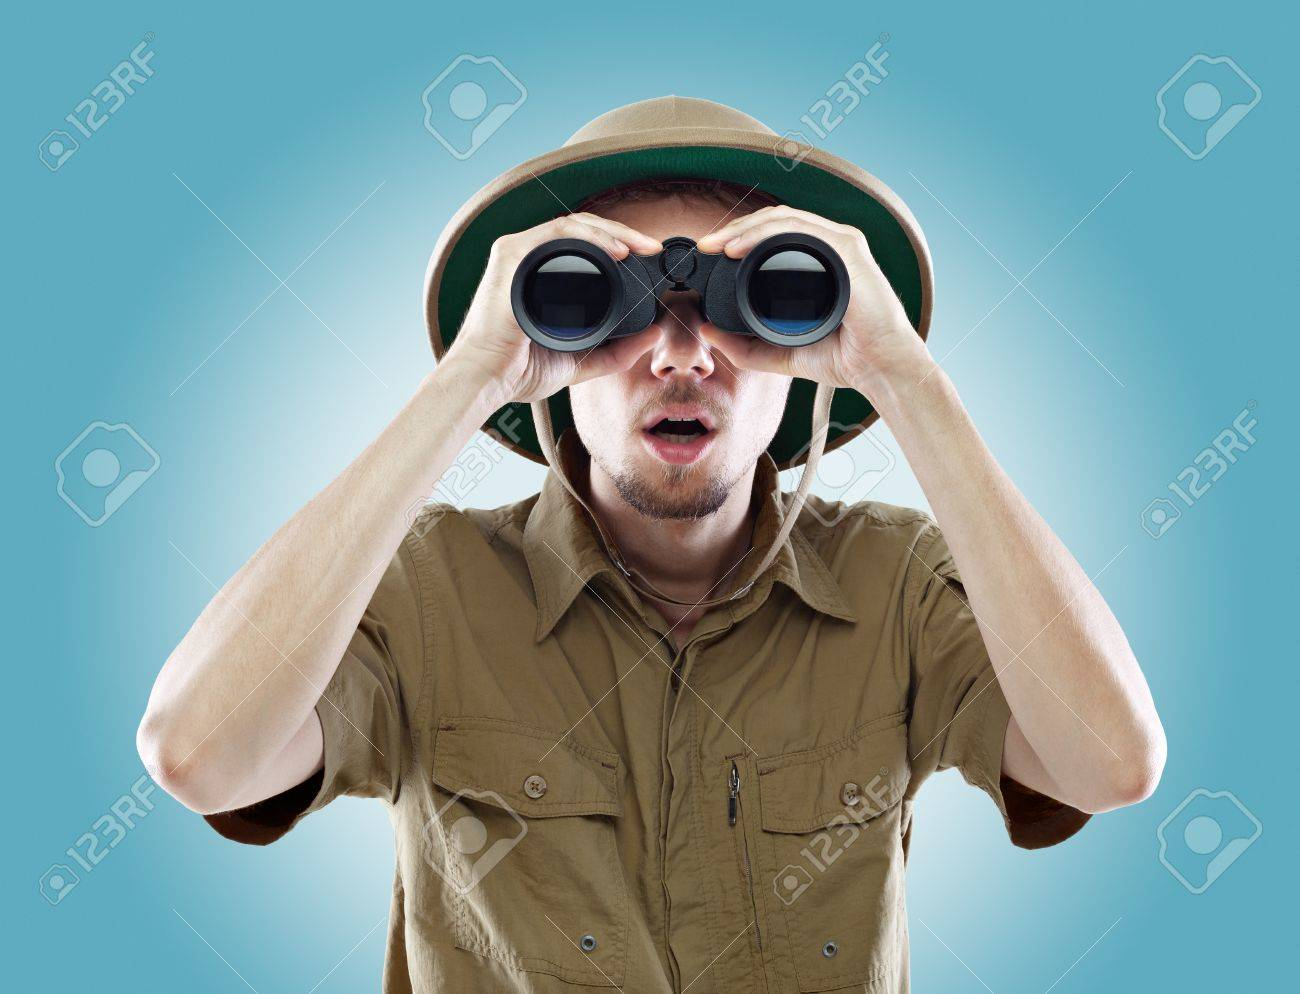 Young man wearing a pith helmet looking through a pair of binoculars with a surprised expression, on blue background Stock Photo - 17394767